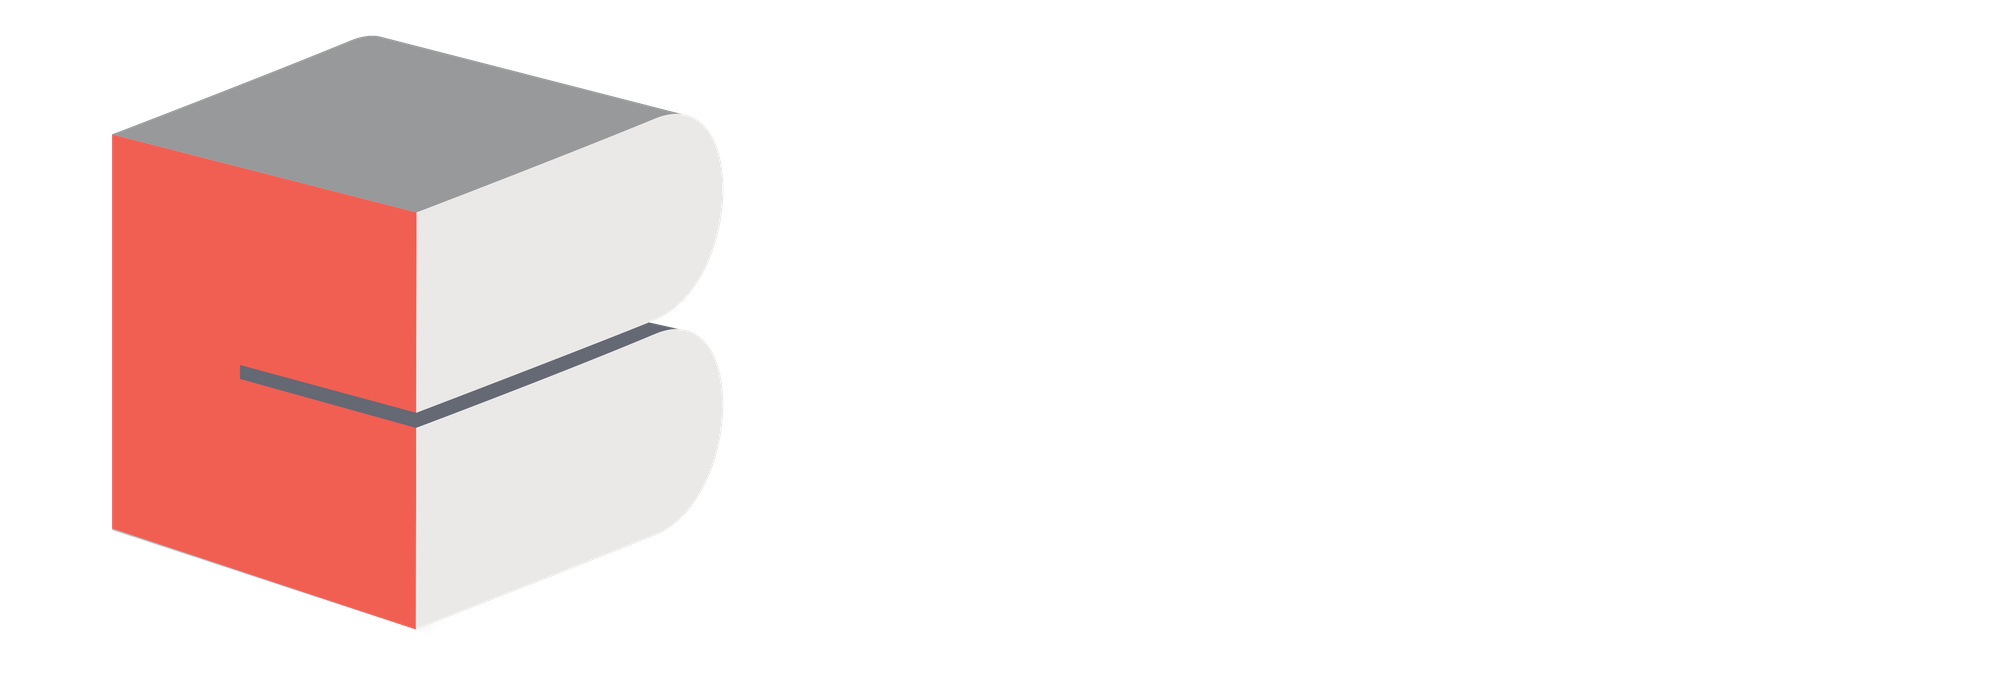 Sites and Tools for Competitive Programming